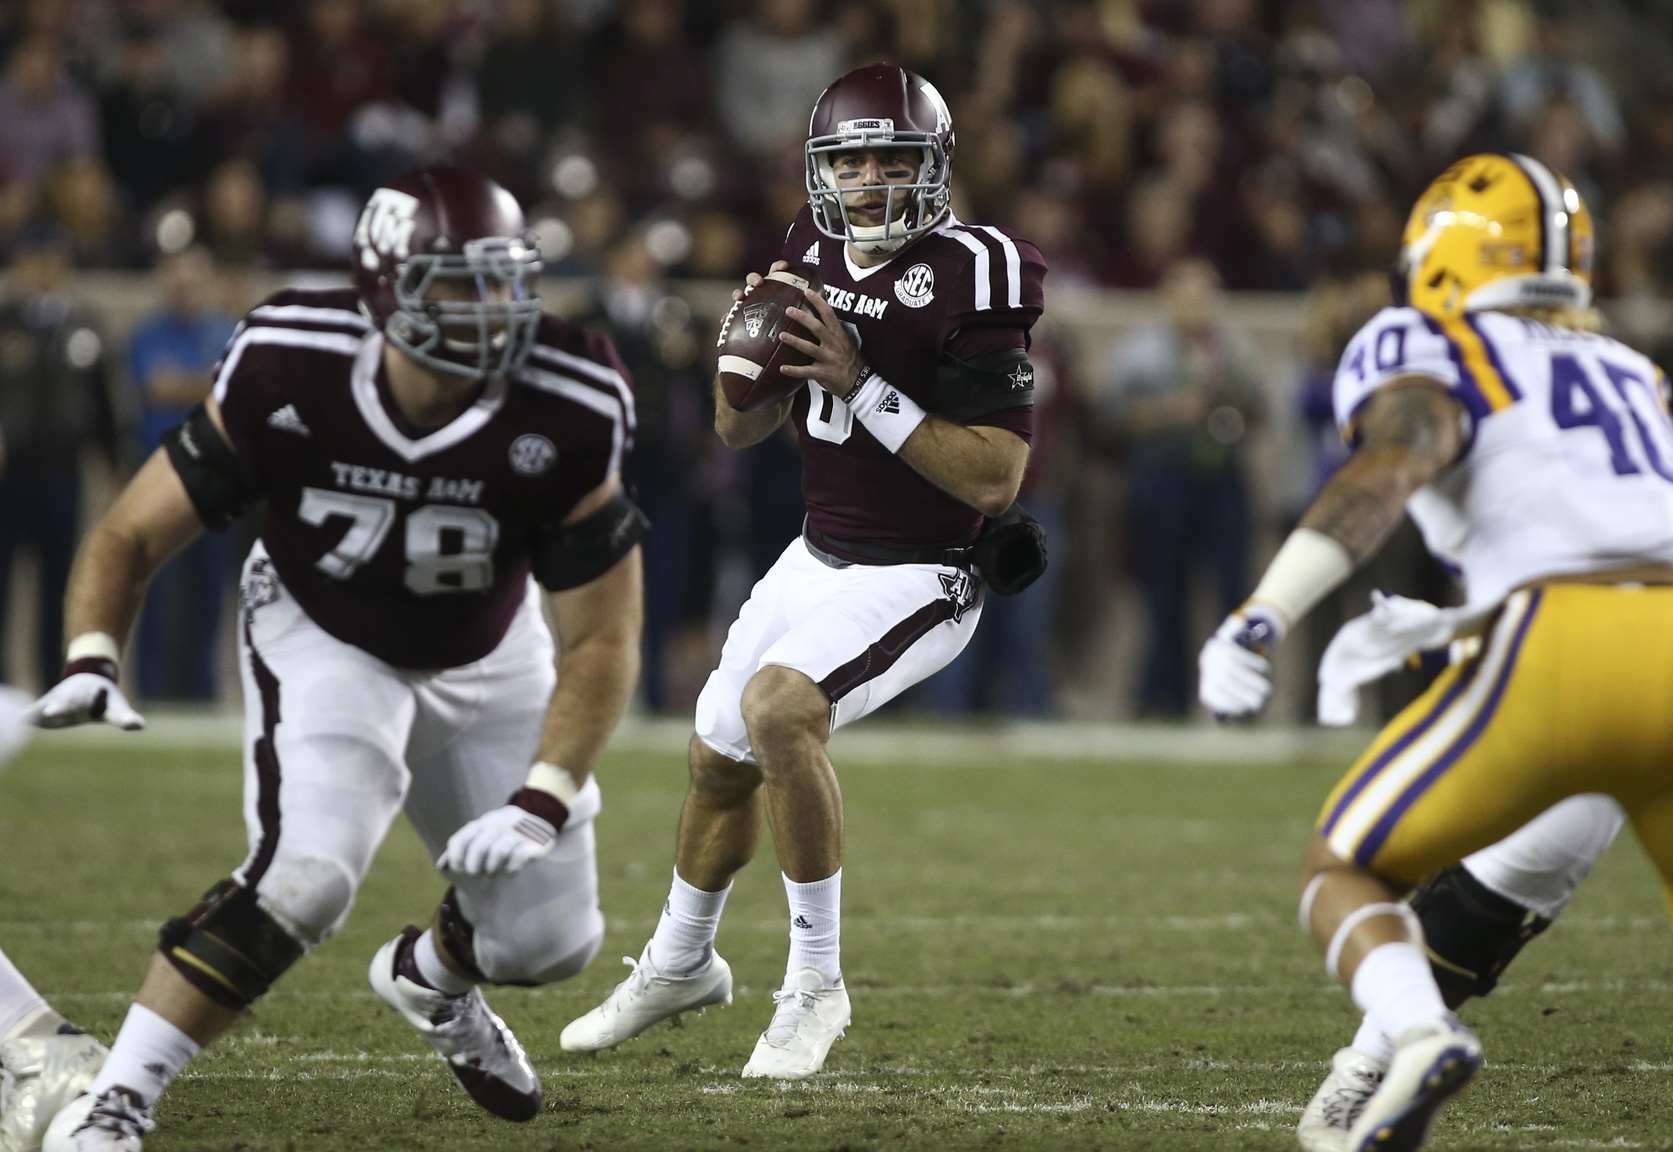 Nov 24, 2016; College Station, TX, USA; Texas A&M Aggies quarterback Trevor Knight (8) looks for an open receiver during the first half against the LSU Tigers at Kyle Field. Mandatory Credit: Troy Taormina-USA TODAY Sports